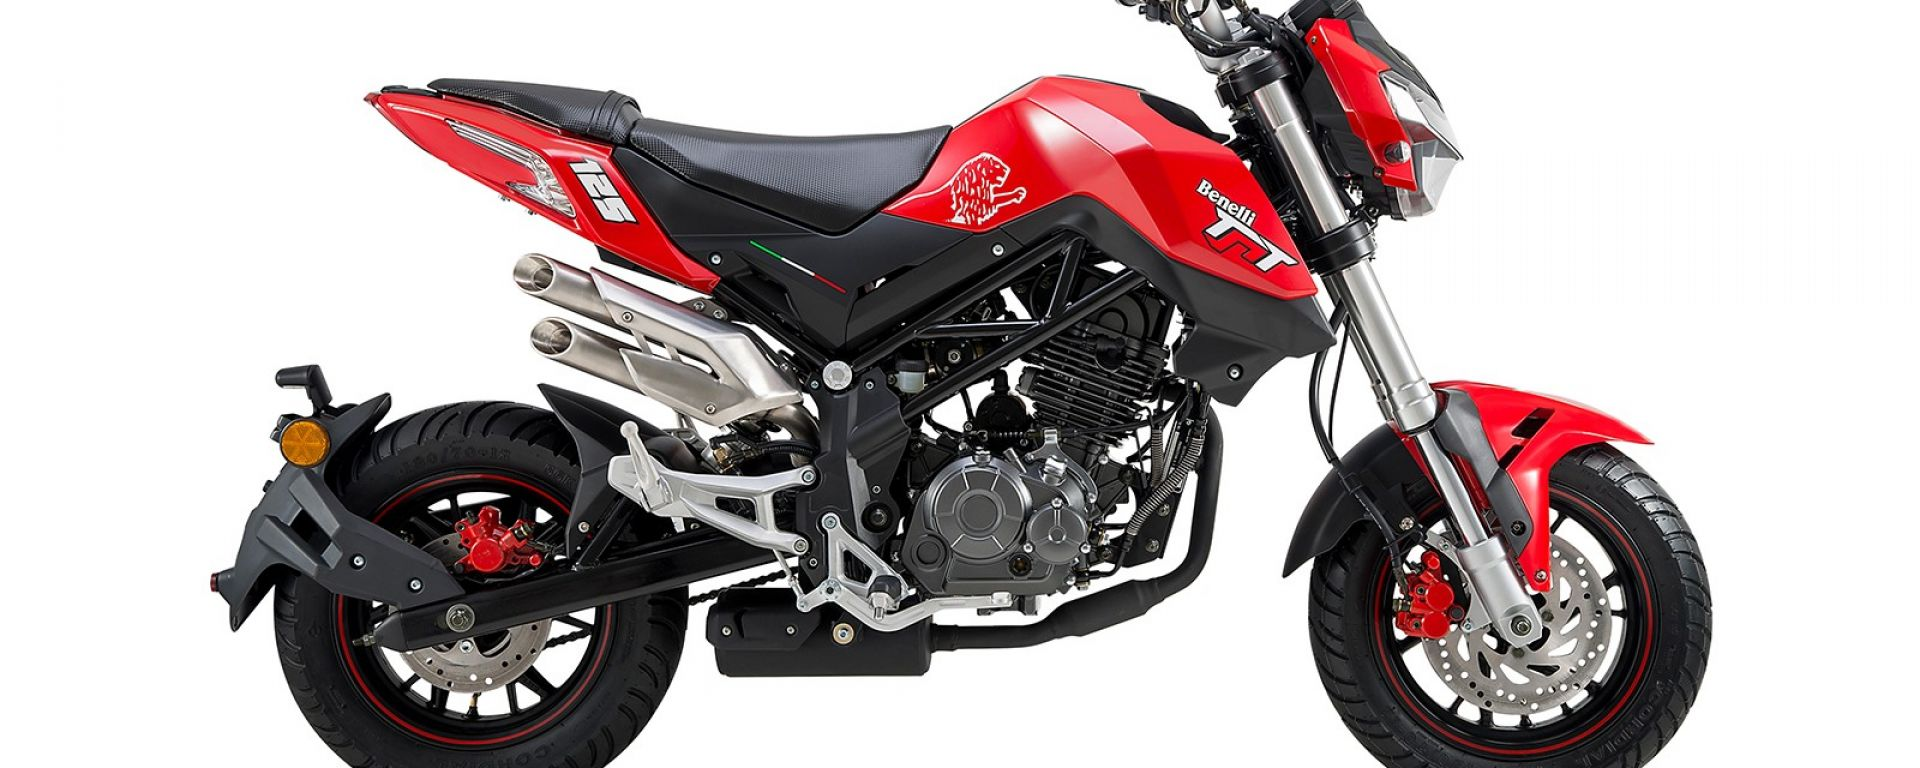 Benelli Tornado Naked T 125 rosso